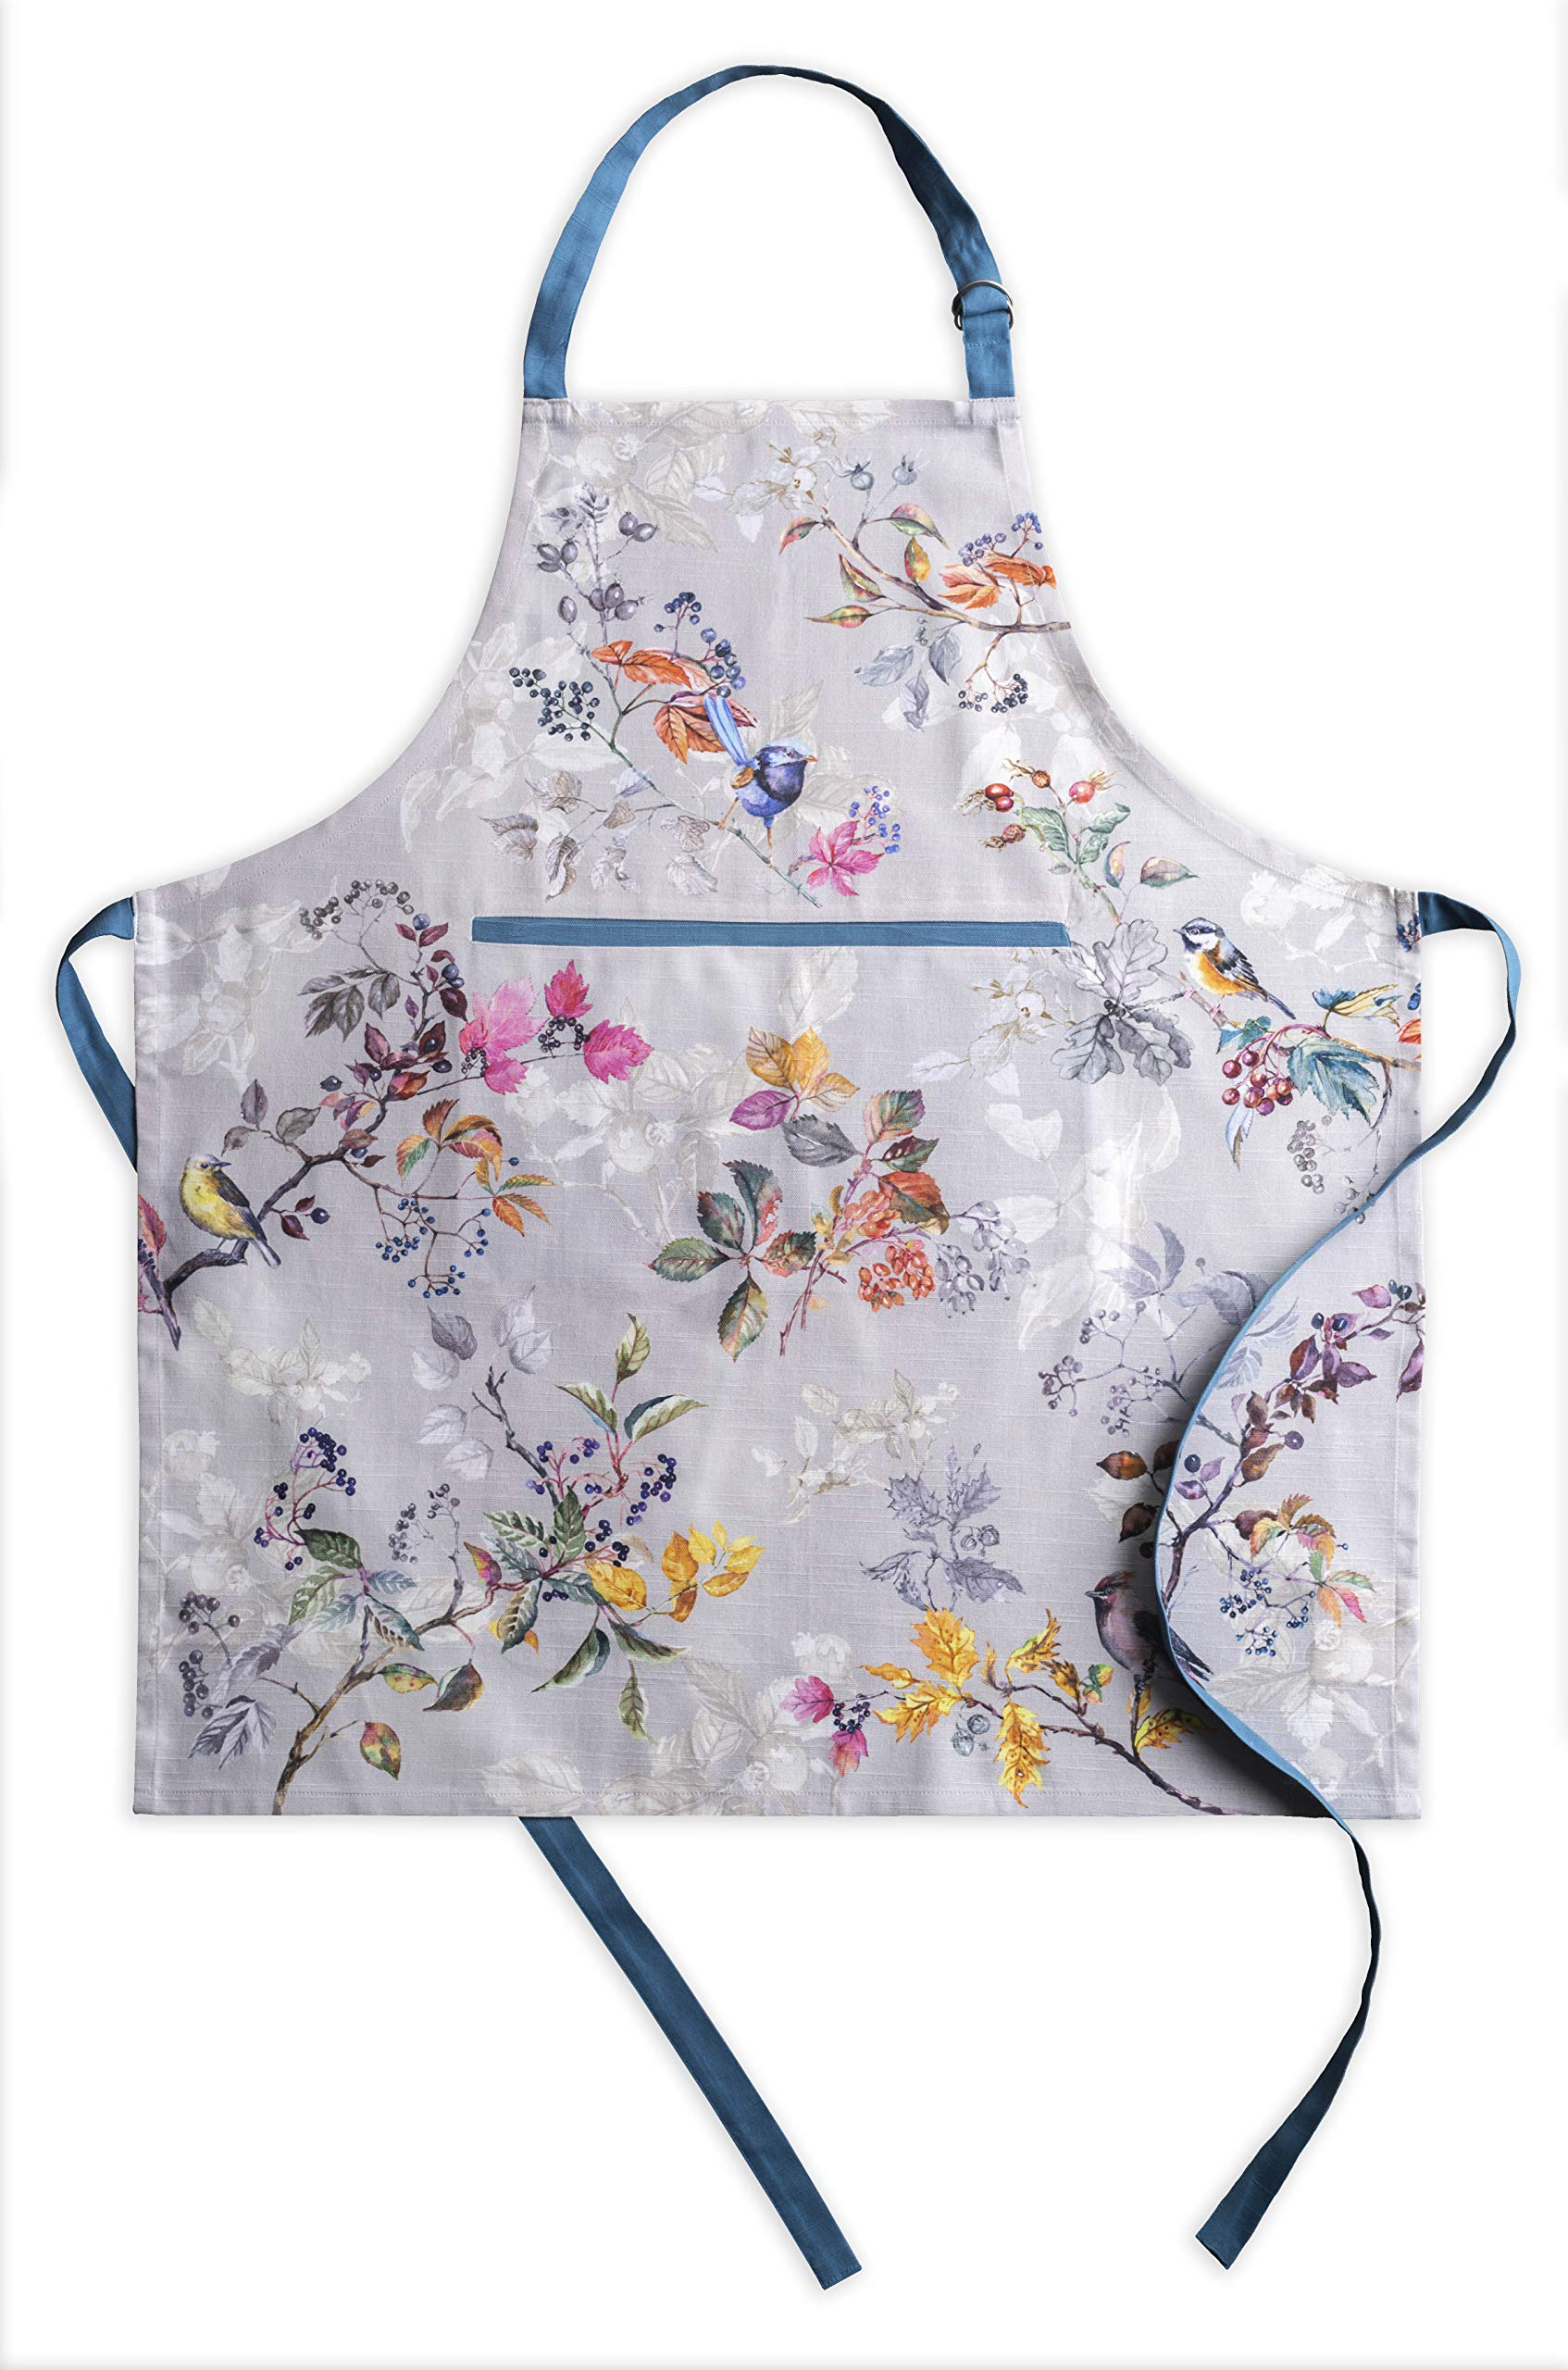 Maison d' Hermine Equinoxe 100% Cotton Grey Apron with an Adjustable Neck & Hidden Center Pocket 27.5 Inch by 31.5 Inch